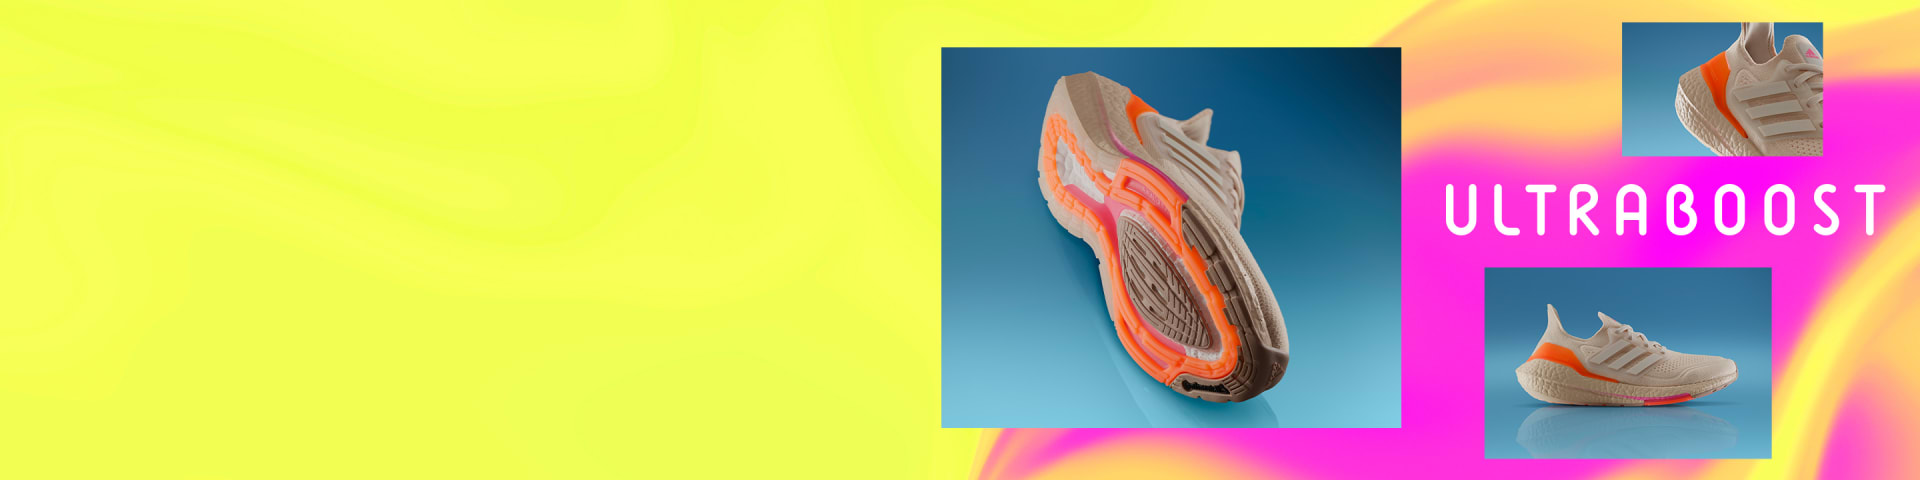 Tech elements that make up of the new Ultraboost 21 running shoe including the LEP and Boost sole.